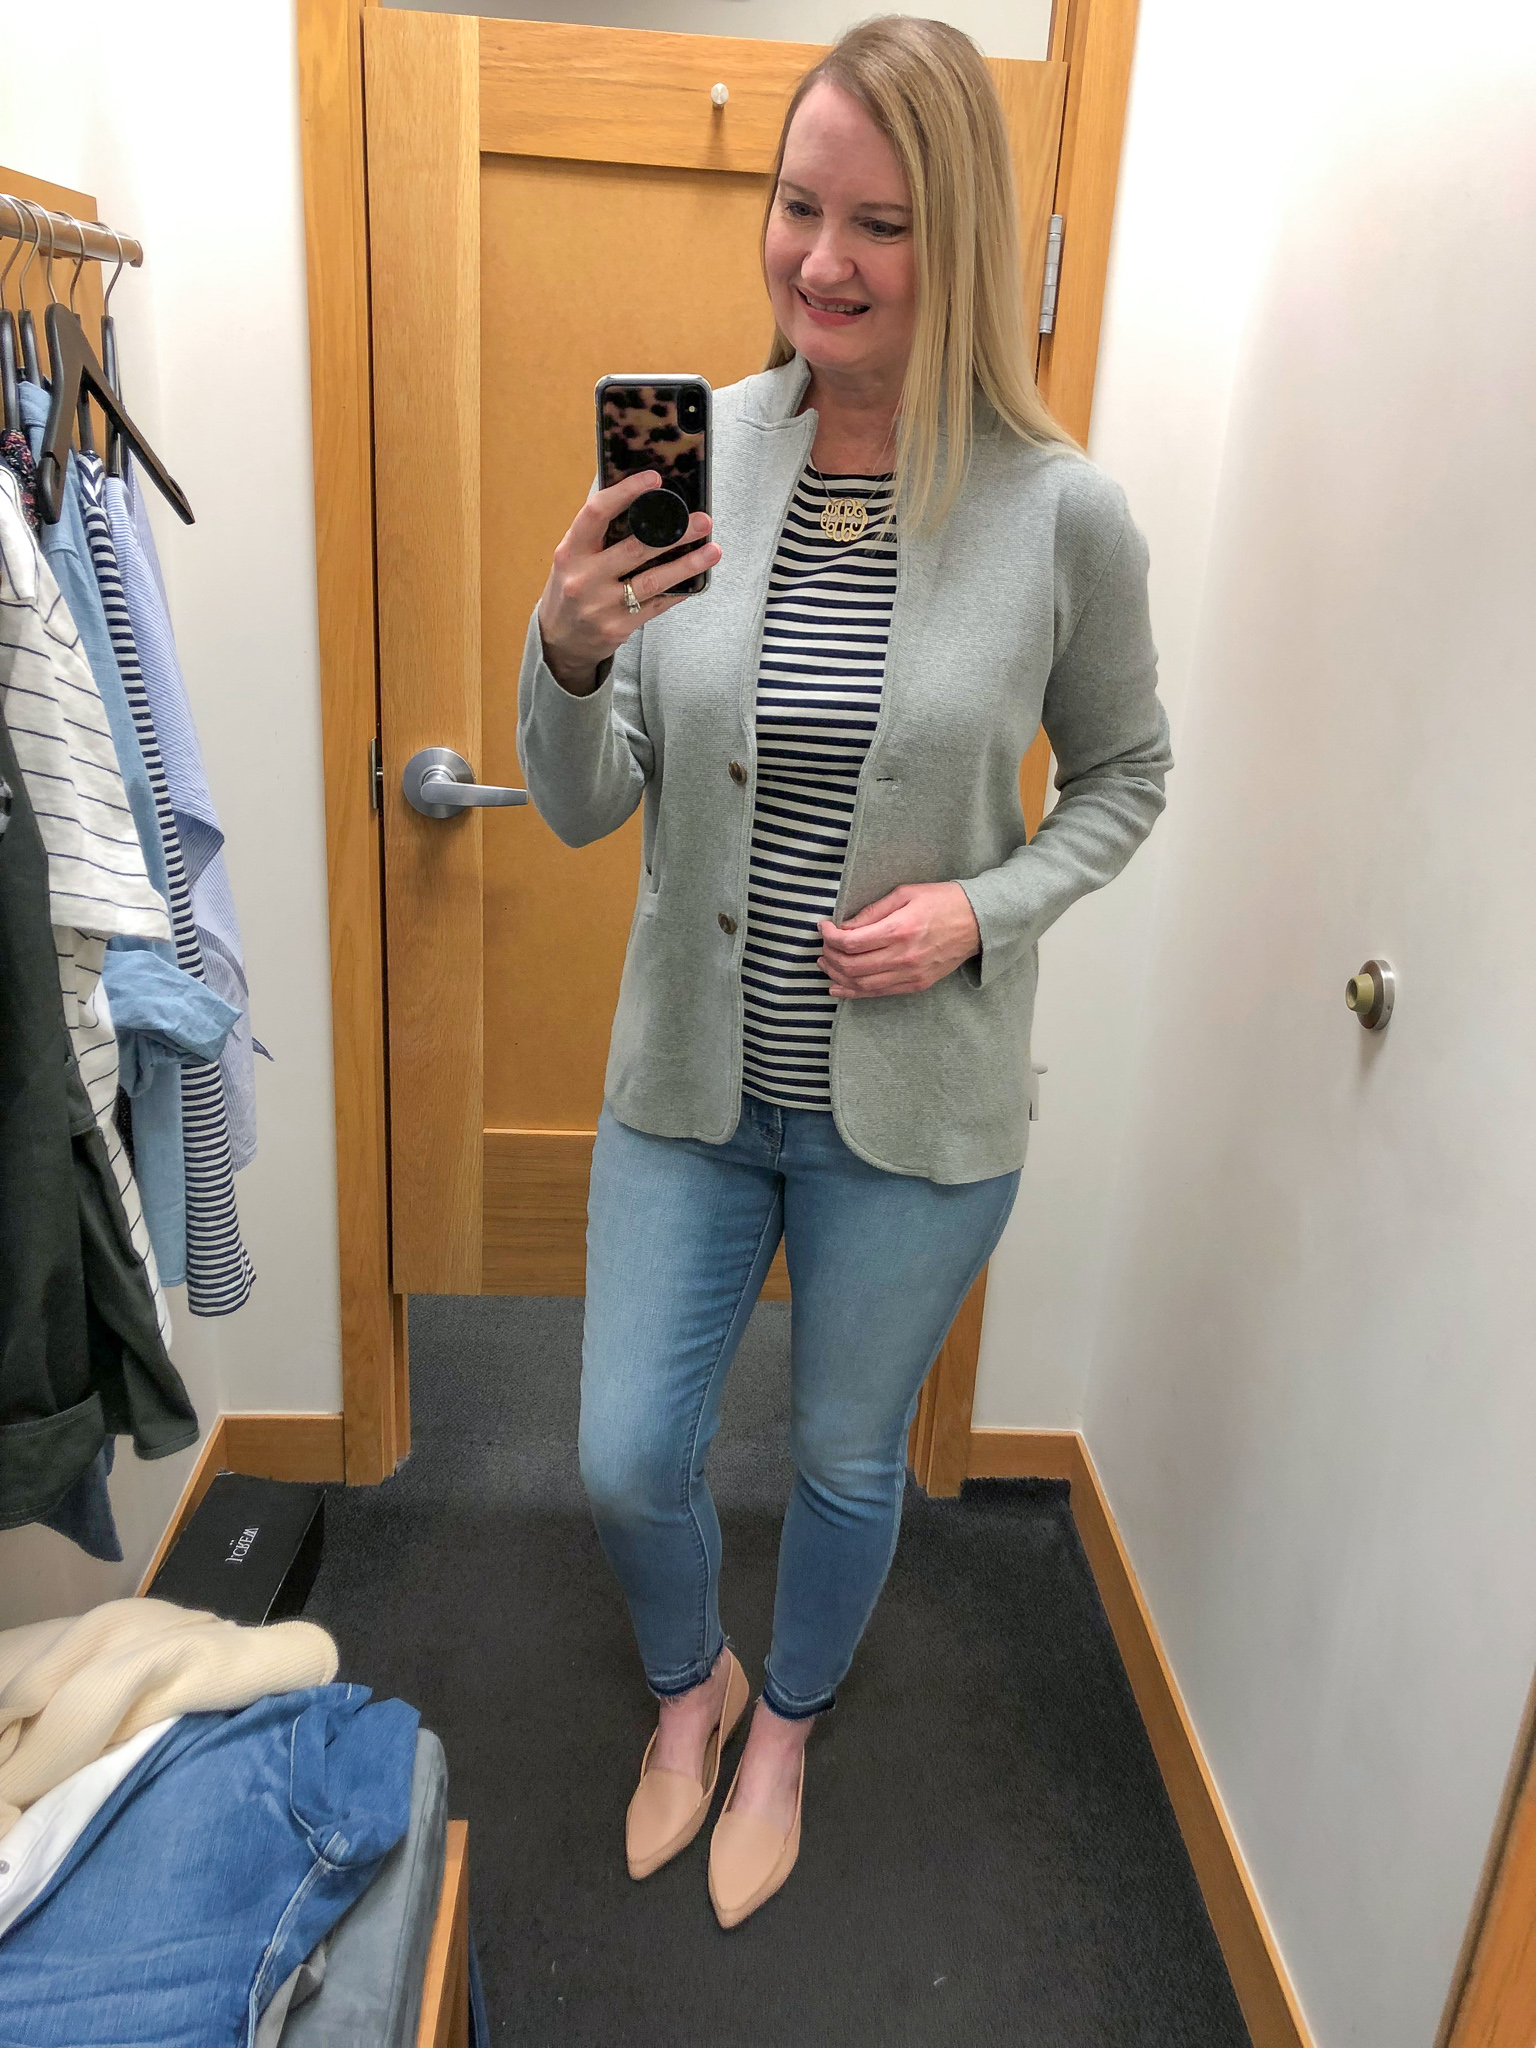 J Crew Factory Fitting Room Reviews March 2019 6